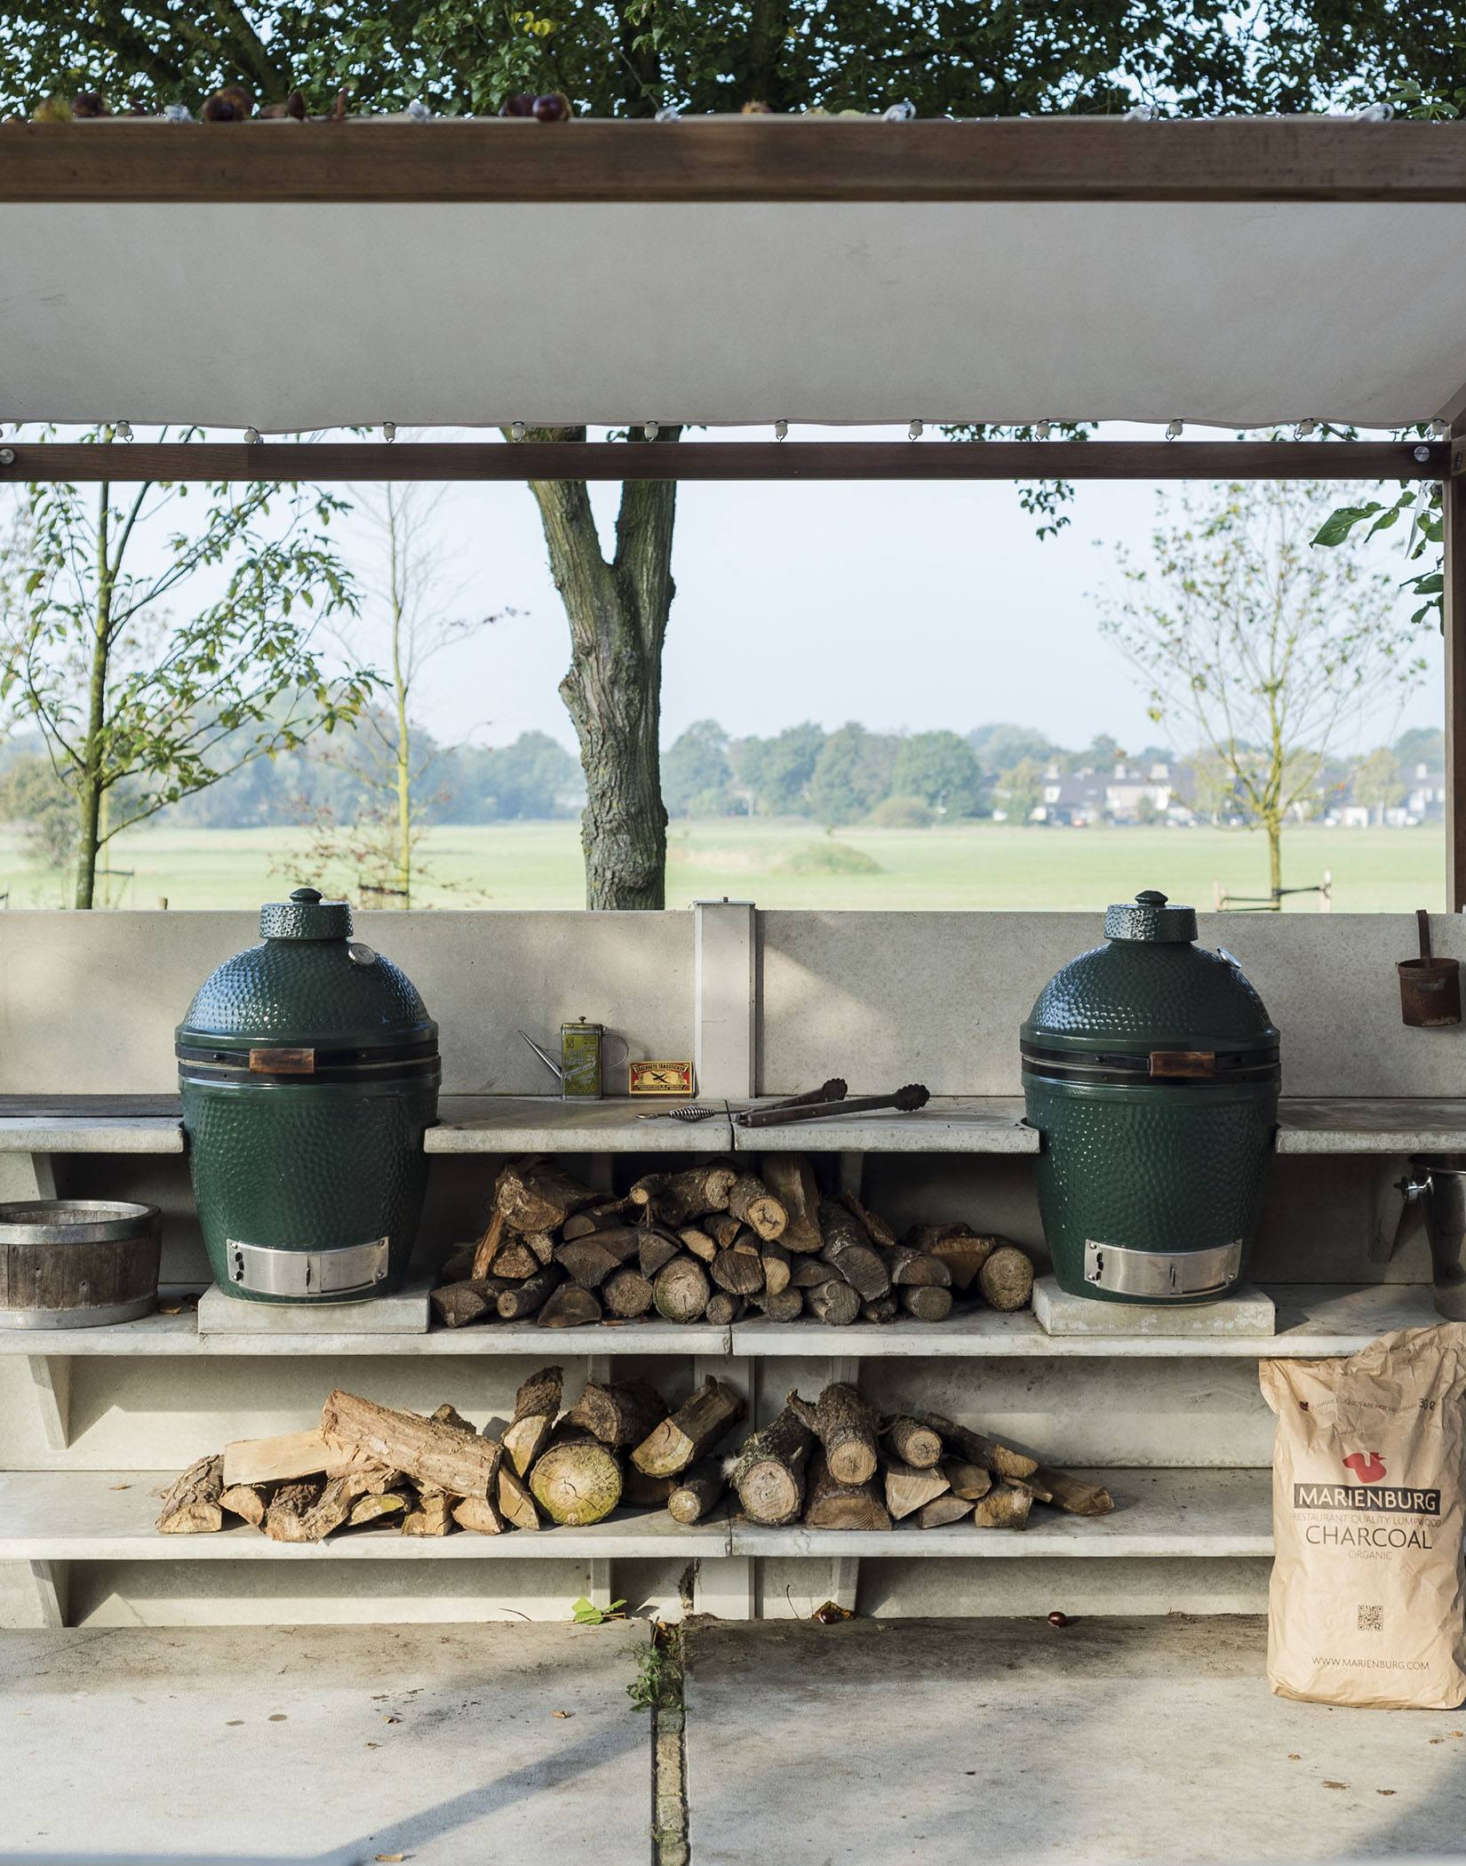 The WWOO accessories range from wood storage boxes to cutting boards to Green Egg ceramic grills.Photograph by Matthew Williams from Gardenista: The Definitive Guide to Stylish Outdoor Spaces.